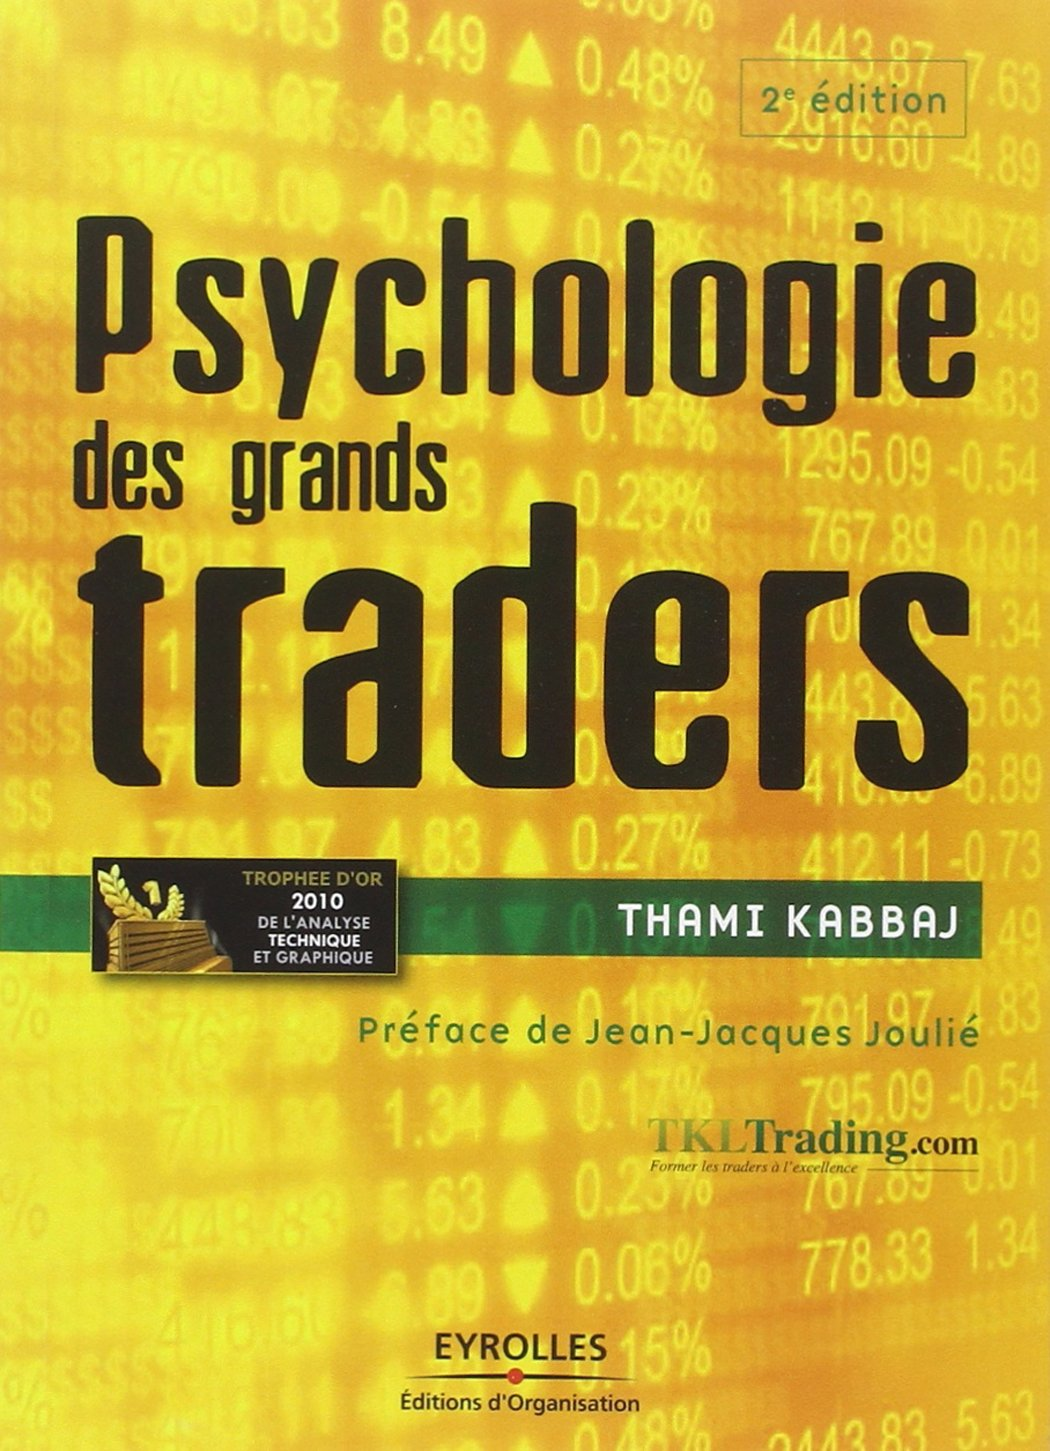 Psychologie des grands traders Broché – 8 septembre 2011 Thami Kabbaj Editions d'Organisation 2212552262 TL2212552262